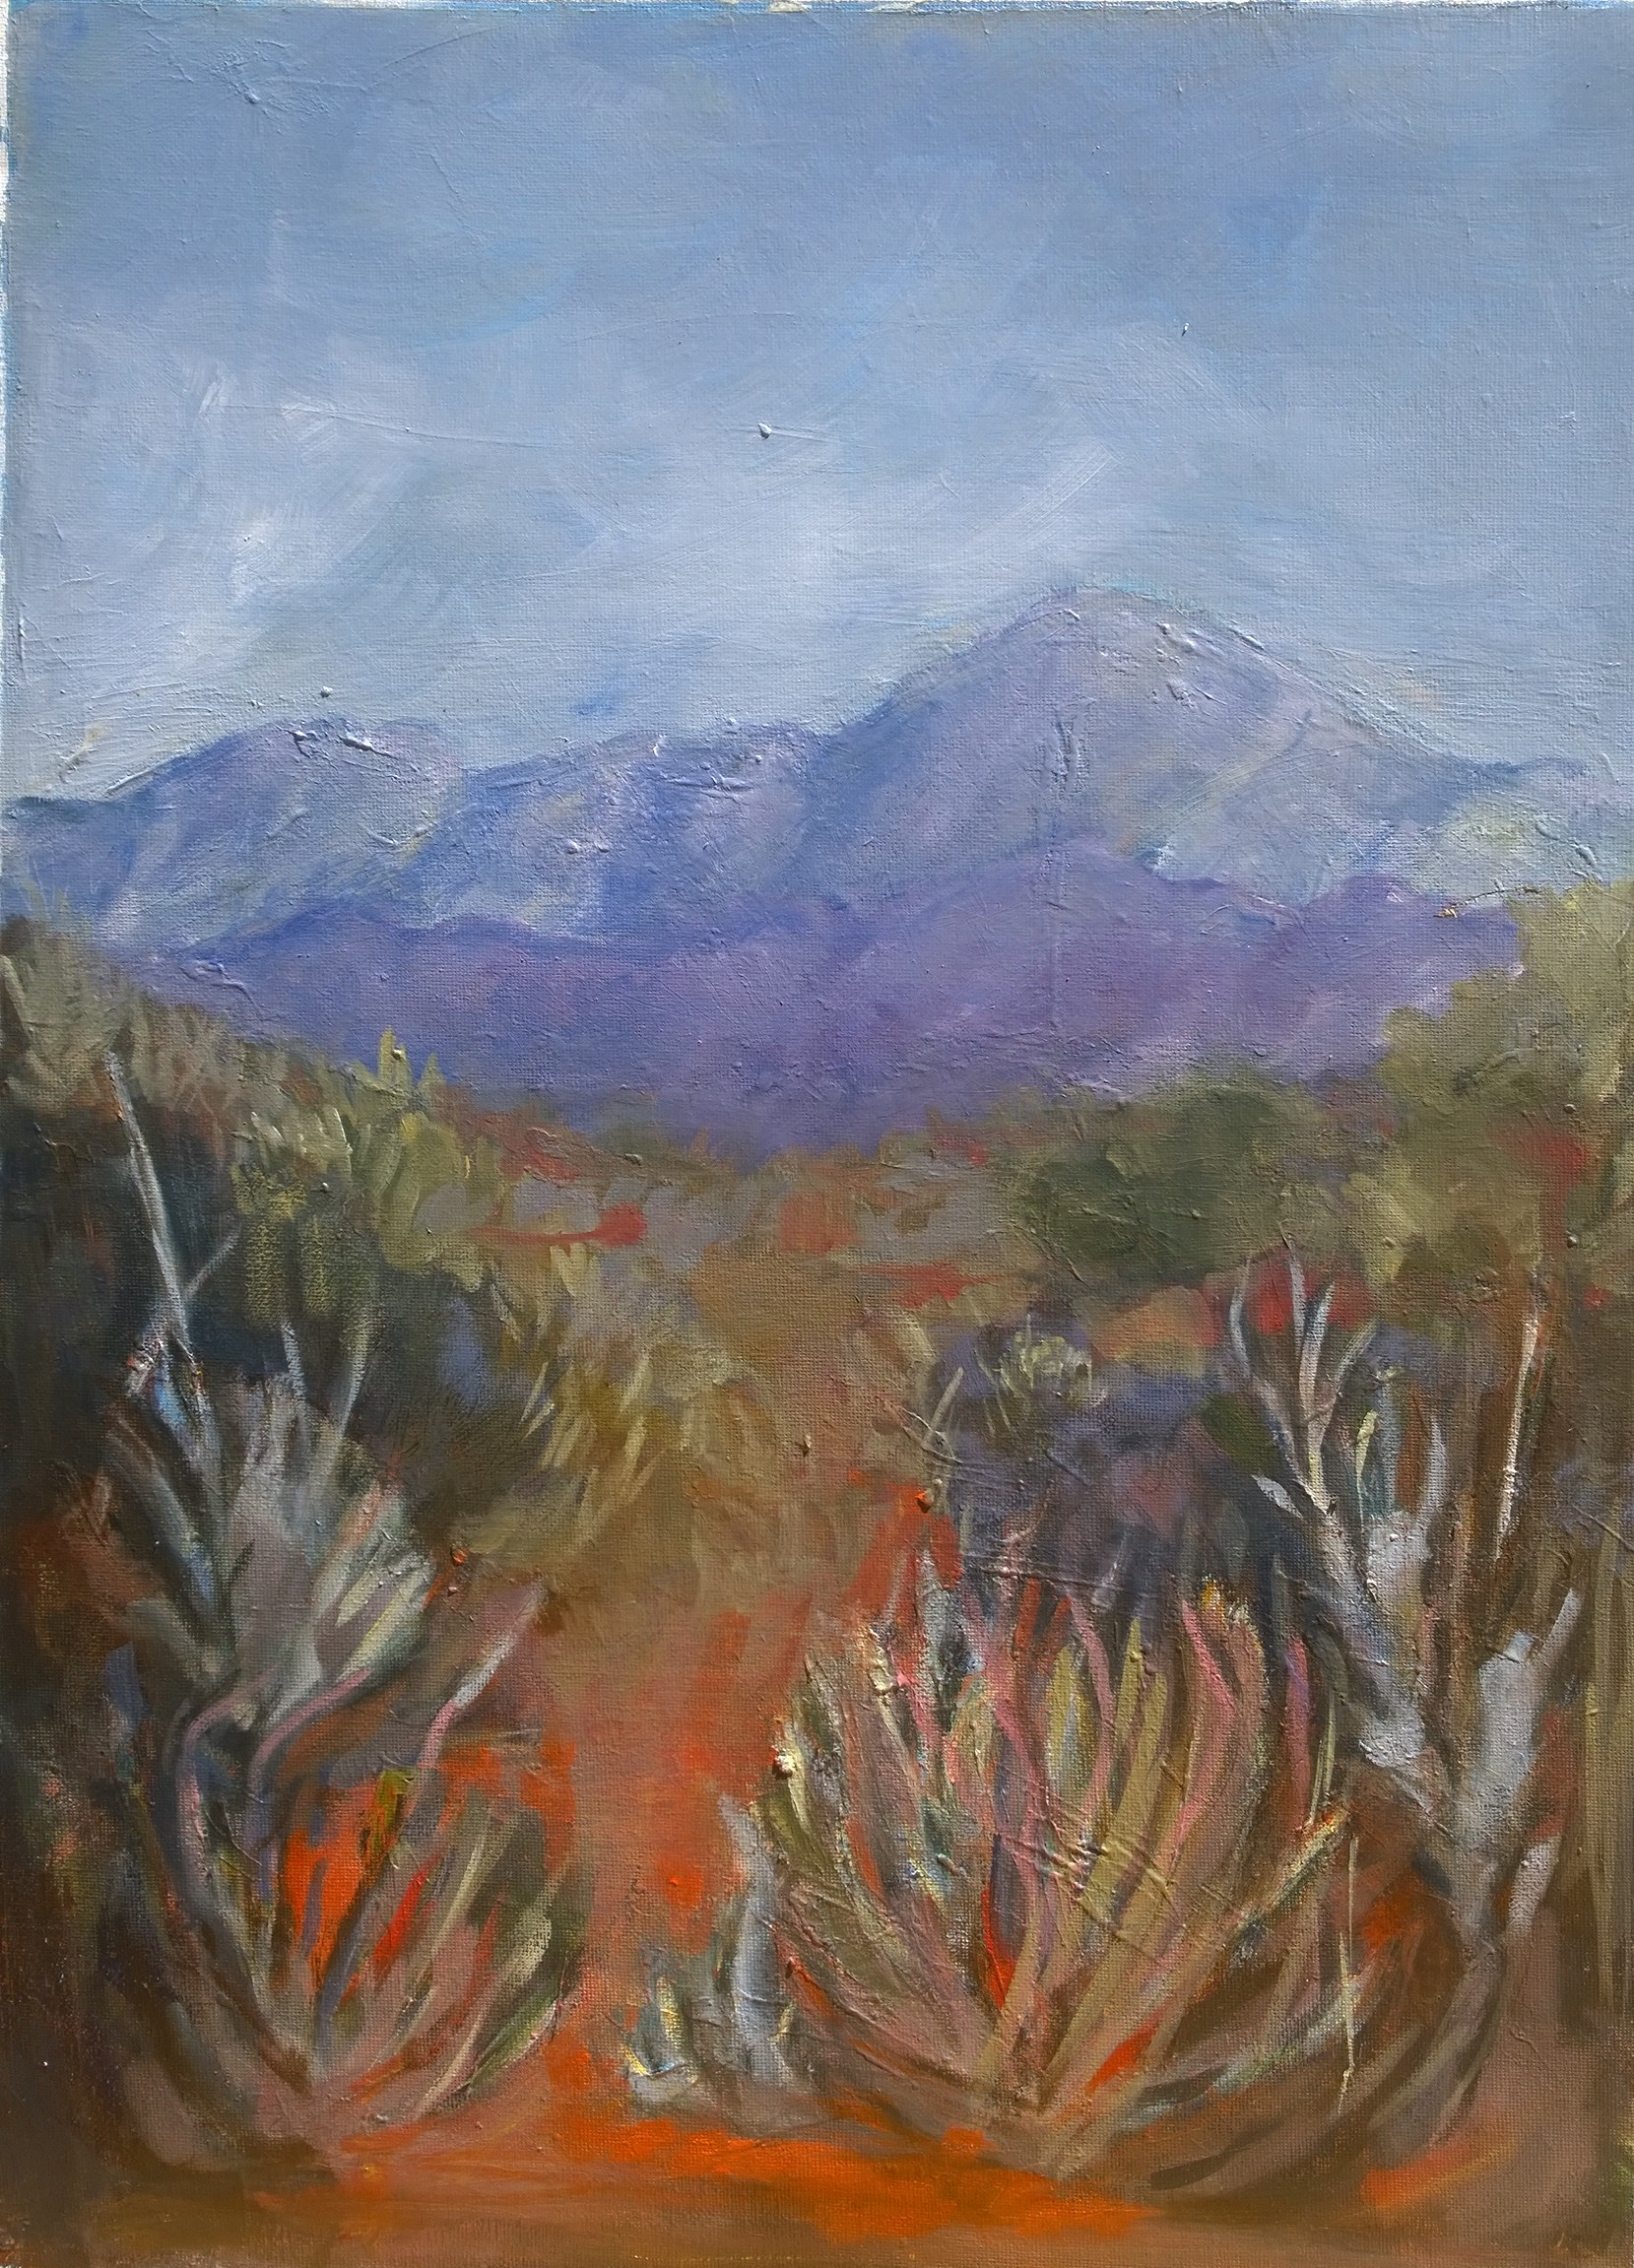 Janet Dixon- Azure day in the Klein Karoo 45x60cm Acrylic on canvas